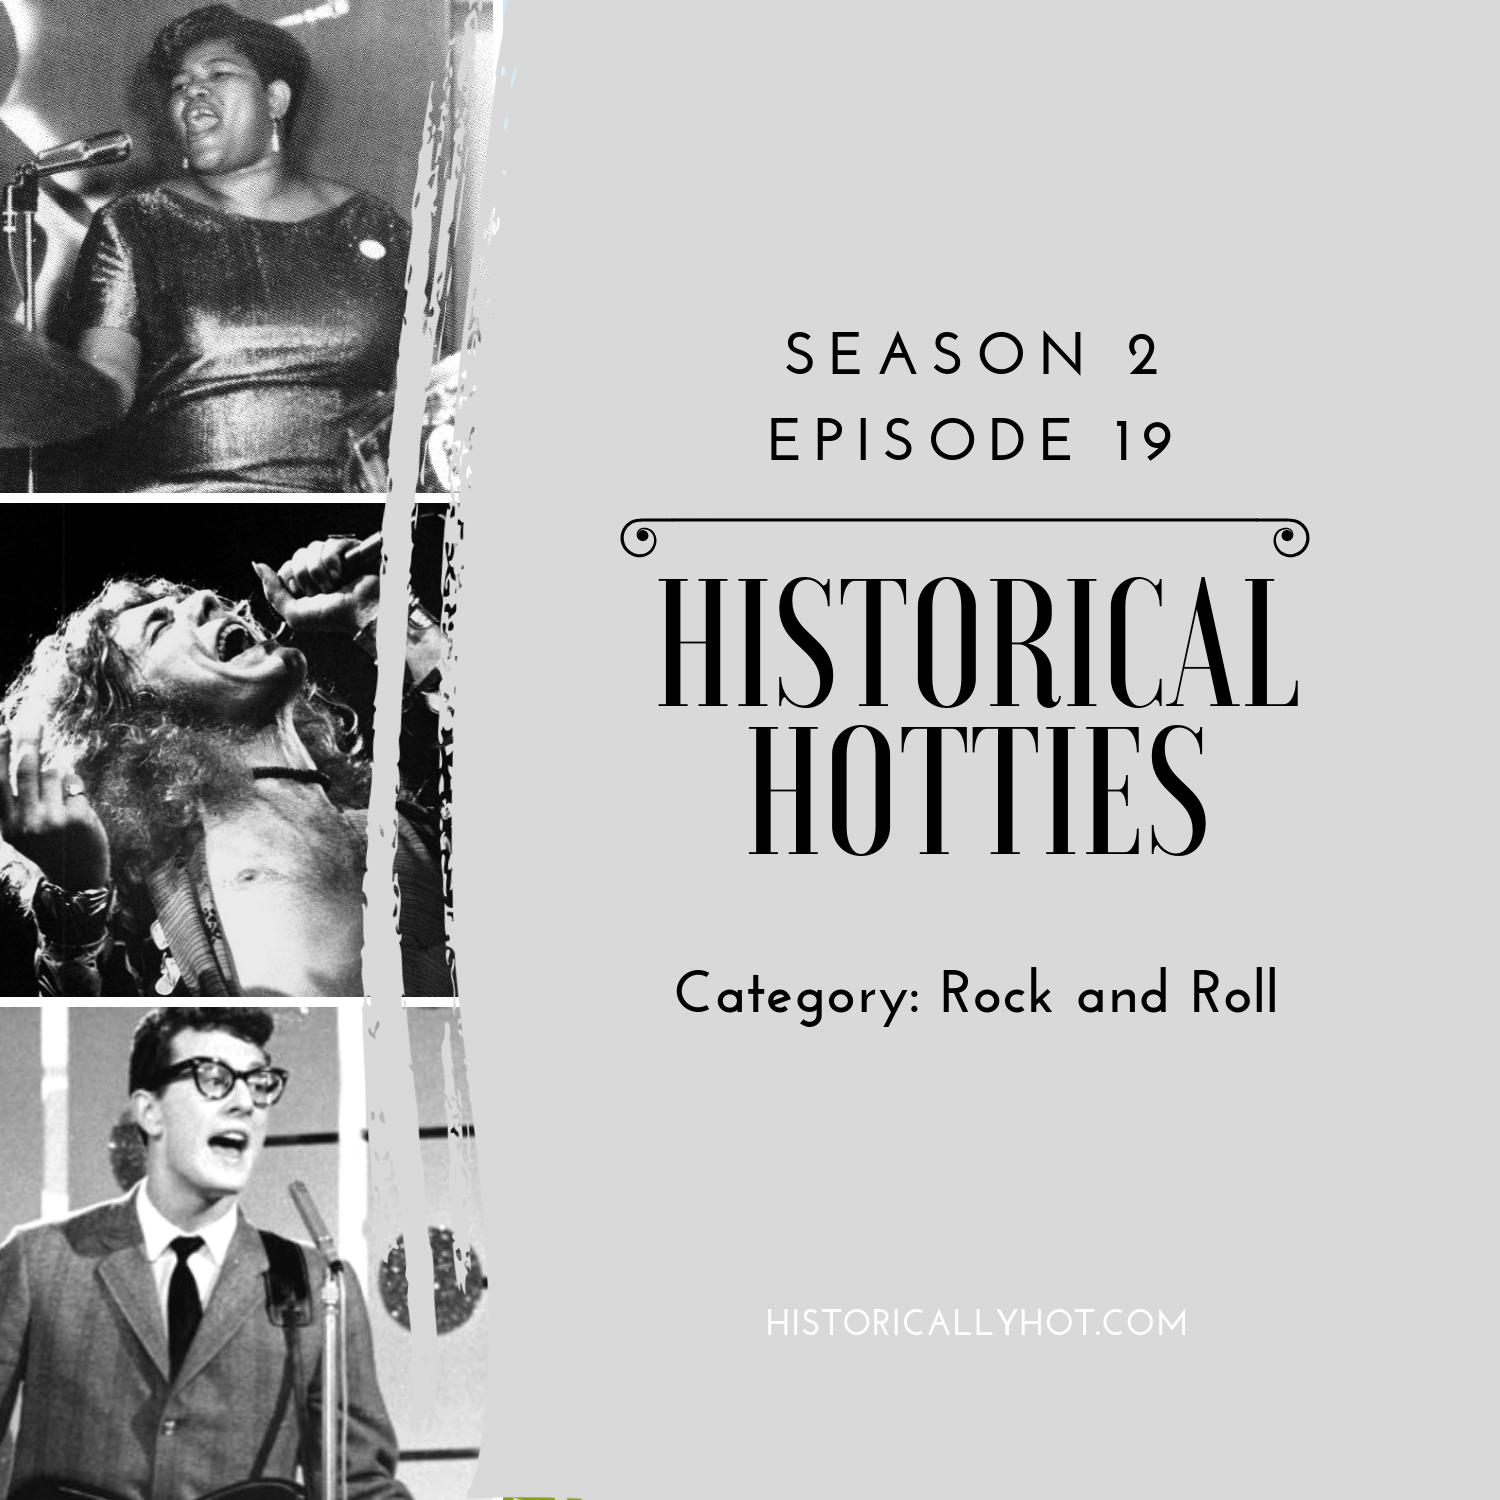 historical hotties rock and roll